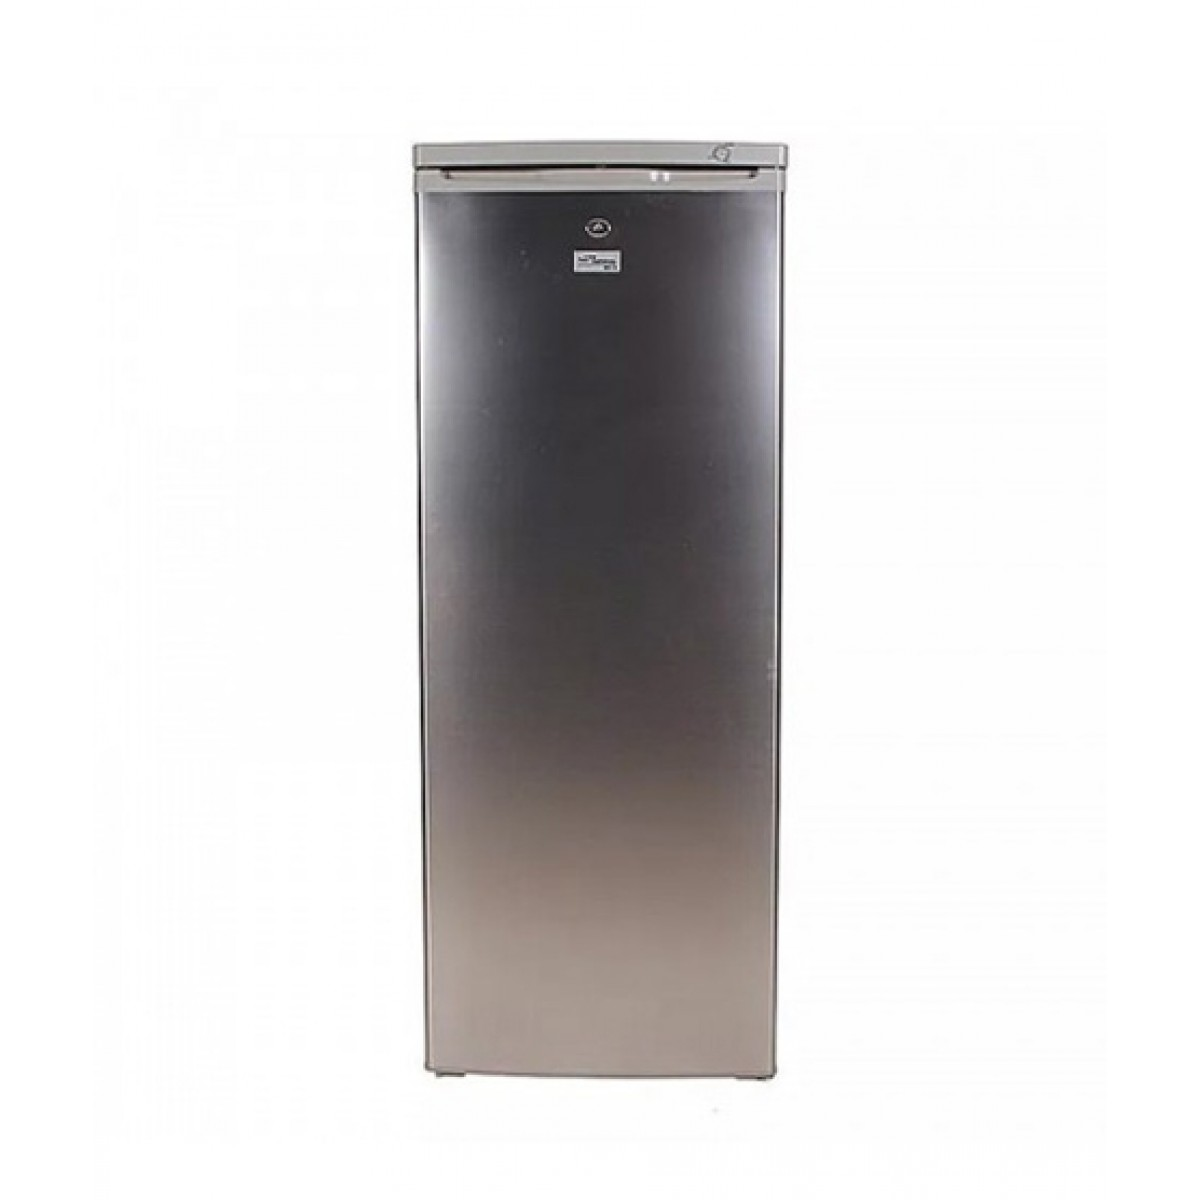 Gaba National Upright D-Frost Freezer (GF-300 DC)